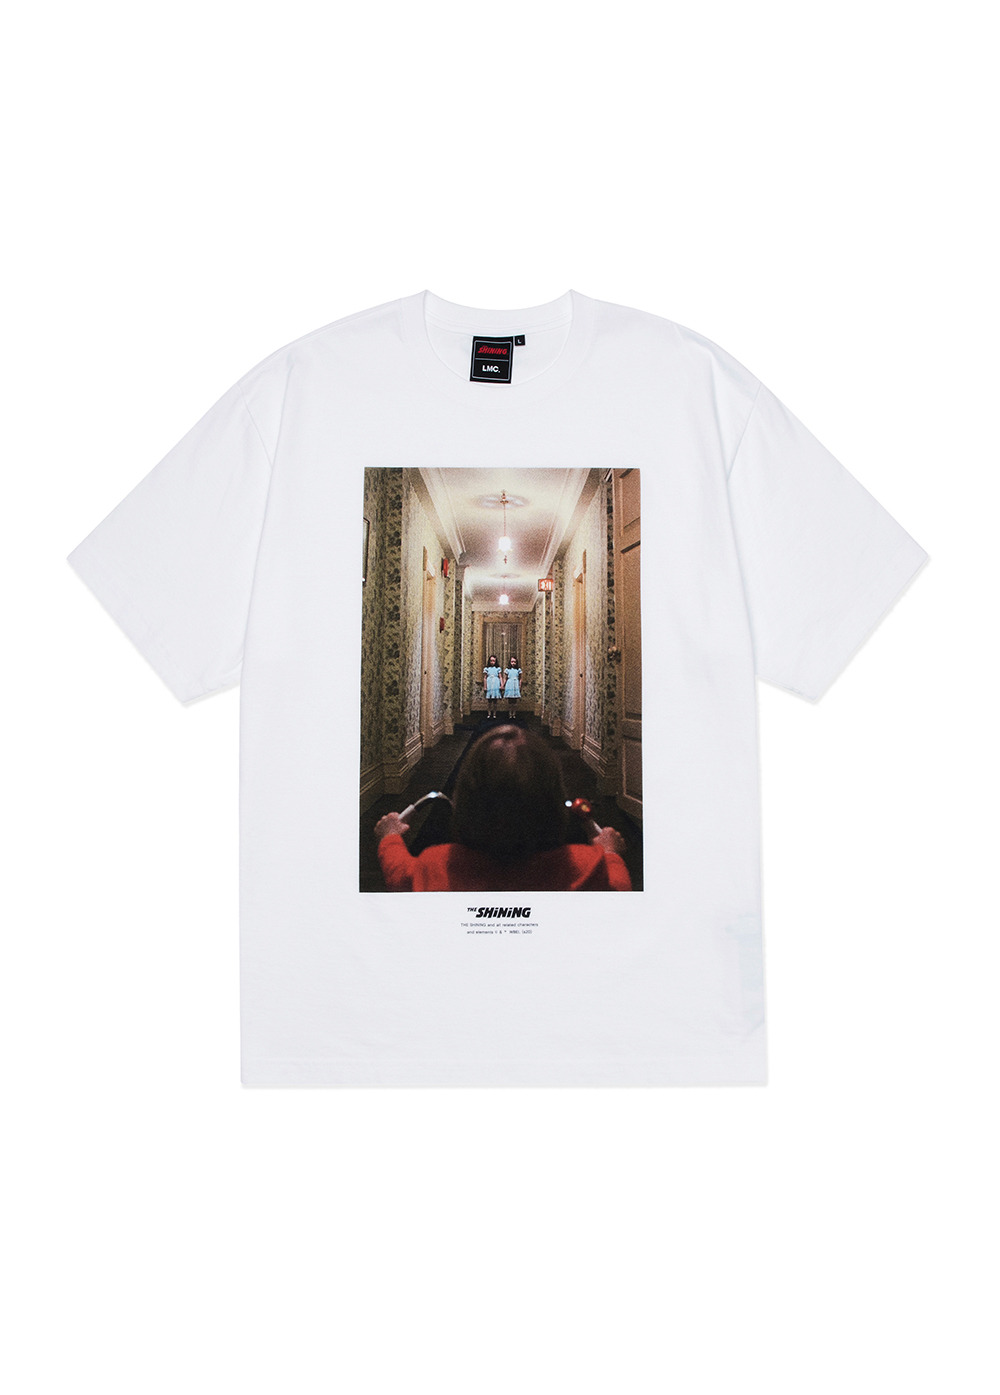 LMC│THE SHINING HALLWAY PHOTO TEE white